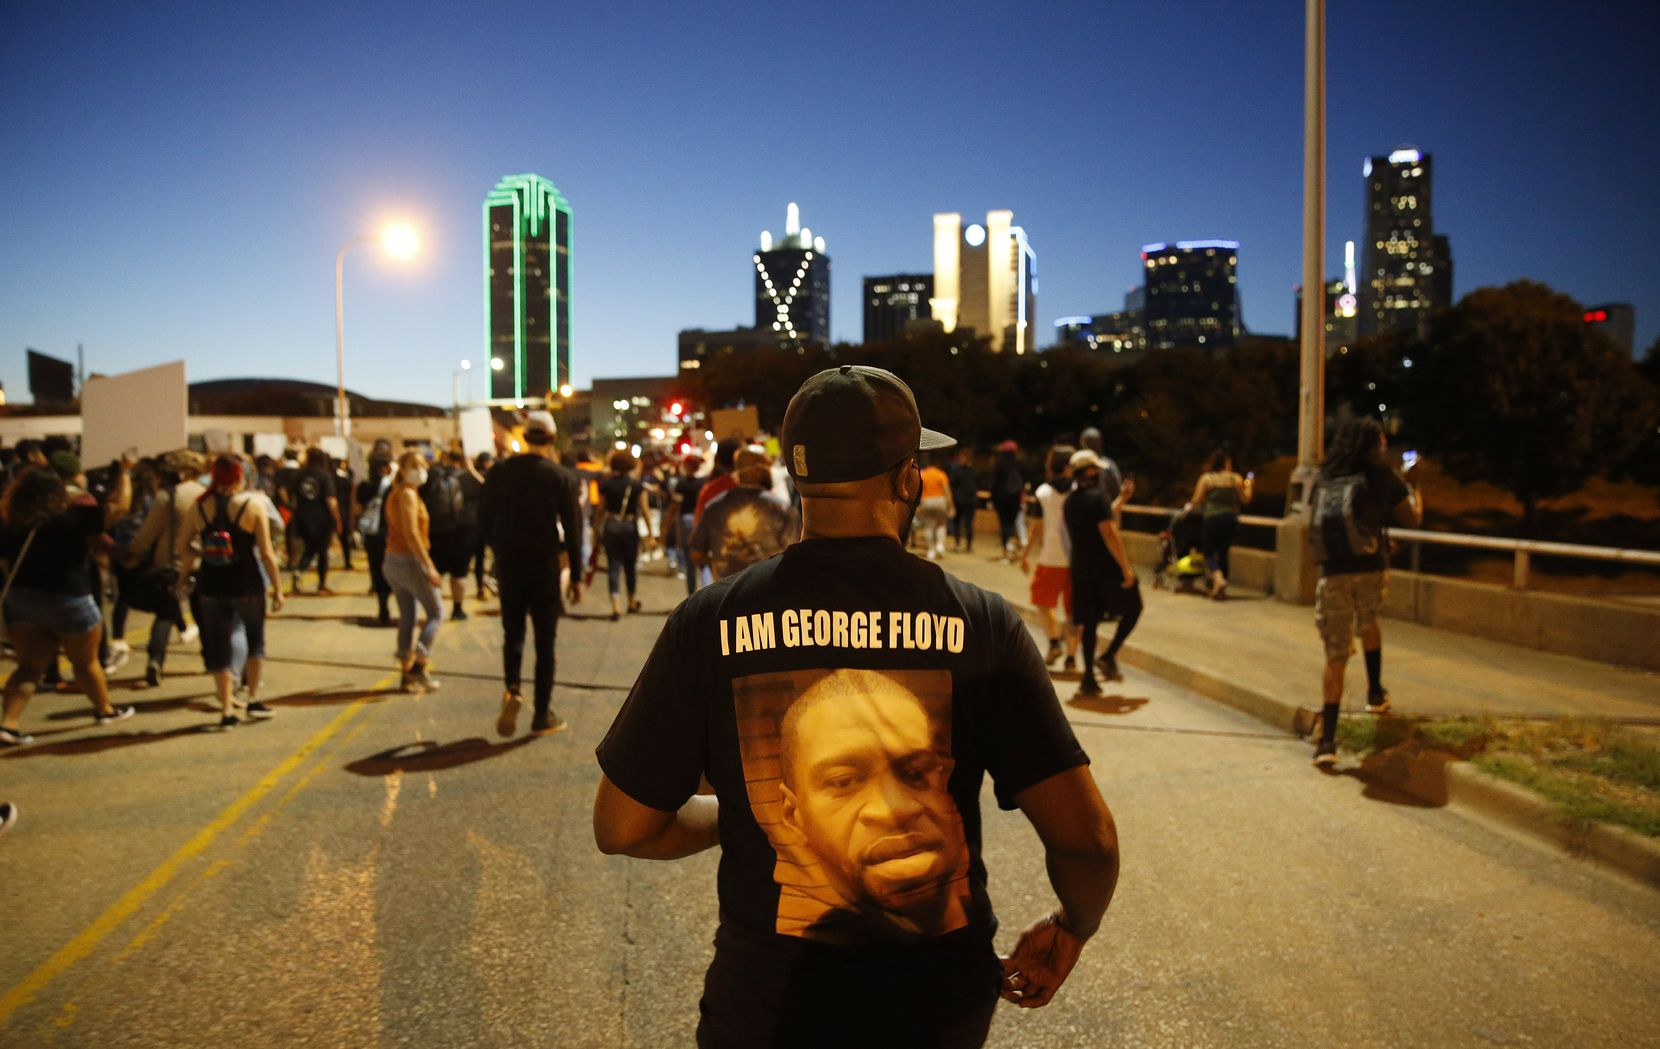 Protesters marched in downtown Dallas during a May 29 demonstration against police brutality. Four days earlier, George Floyd was killed in police custody in Minneapolis, sparking weeks of protests and resulting in charges against the four officers involved in his death